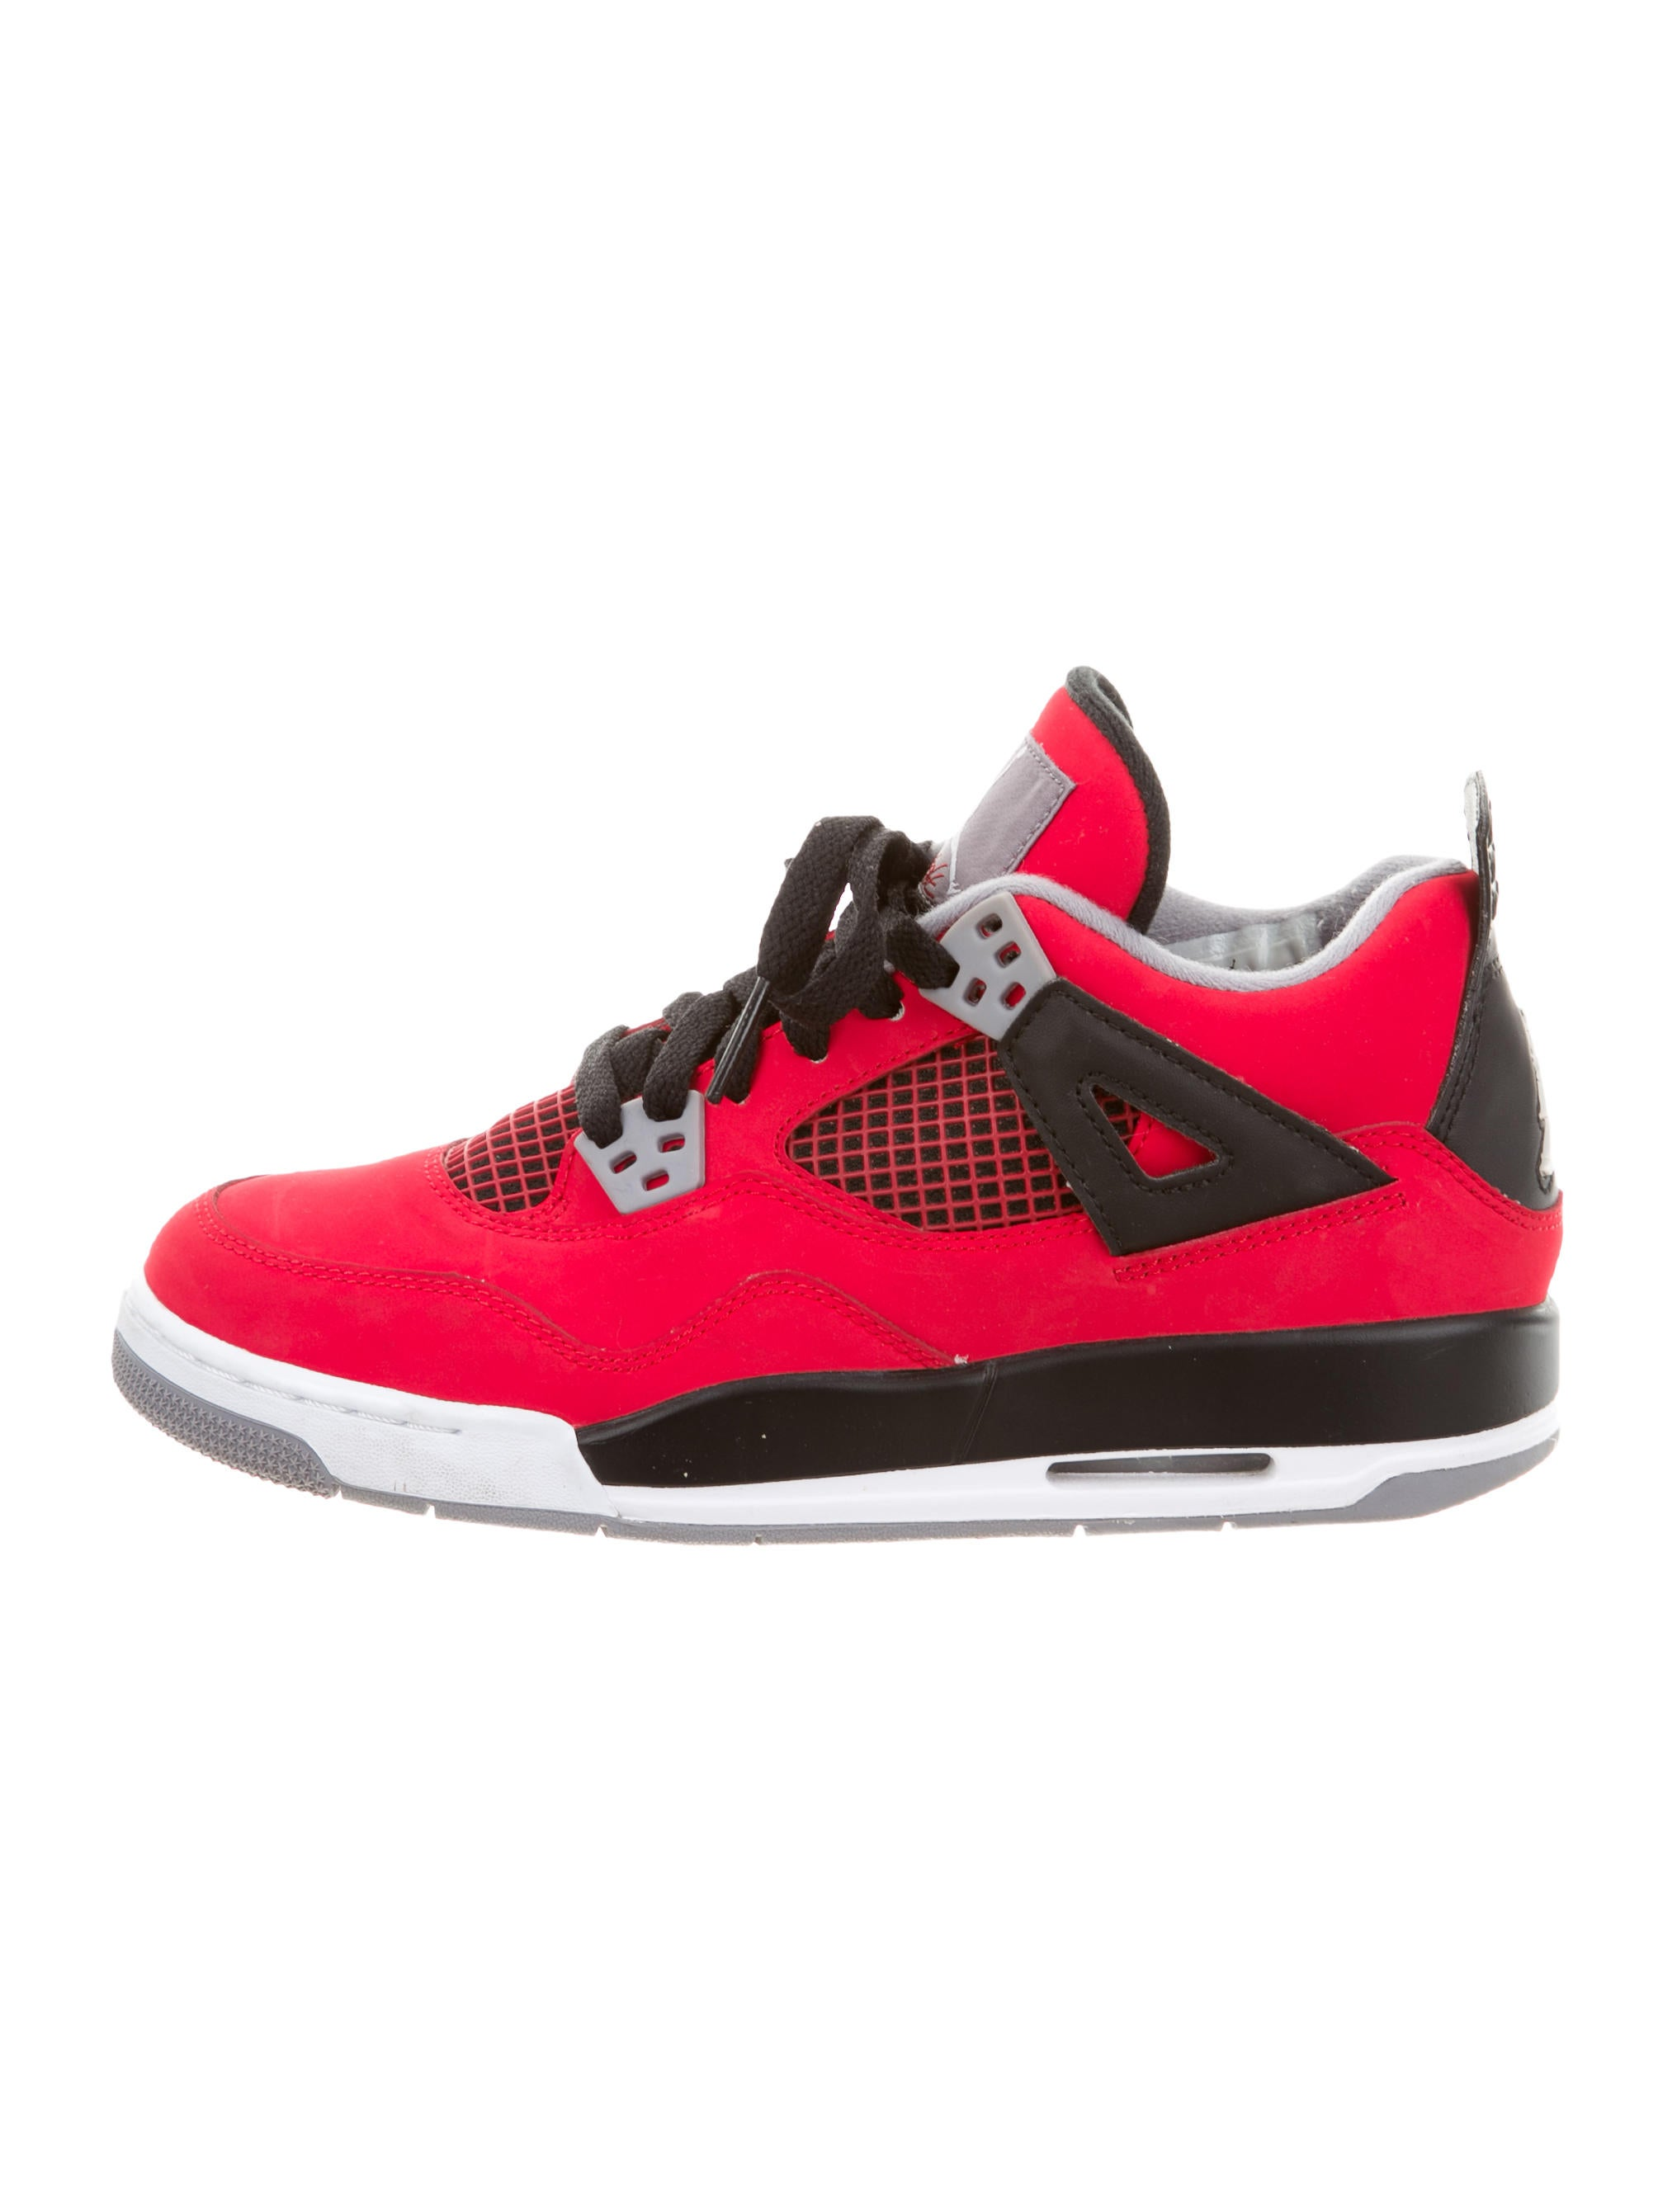 jordans for kids boys. See the latest styles for on or off the field and connect with us online. jordans for kids boys Some boxes may not be in perfect condition.. Jordan Kids' Clearance Clothing at Macy's is a great opportunity to save.